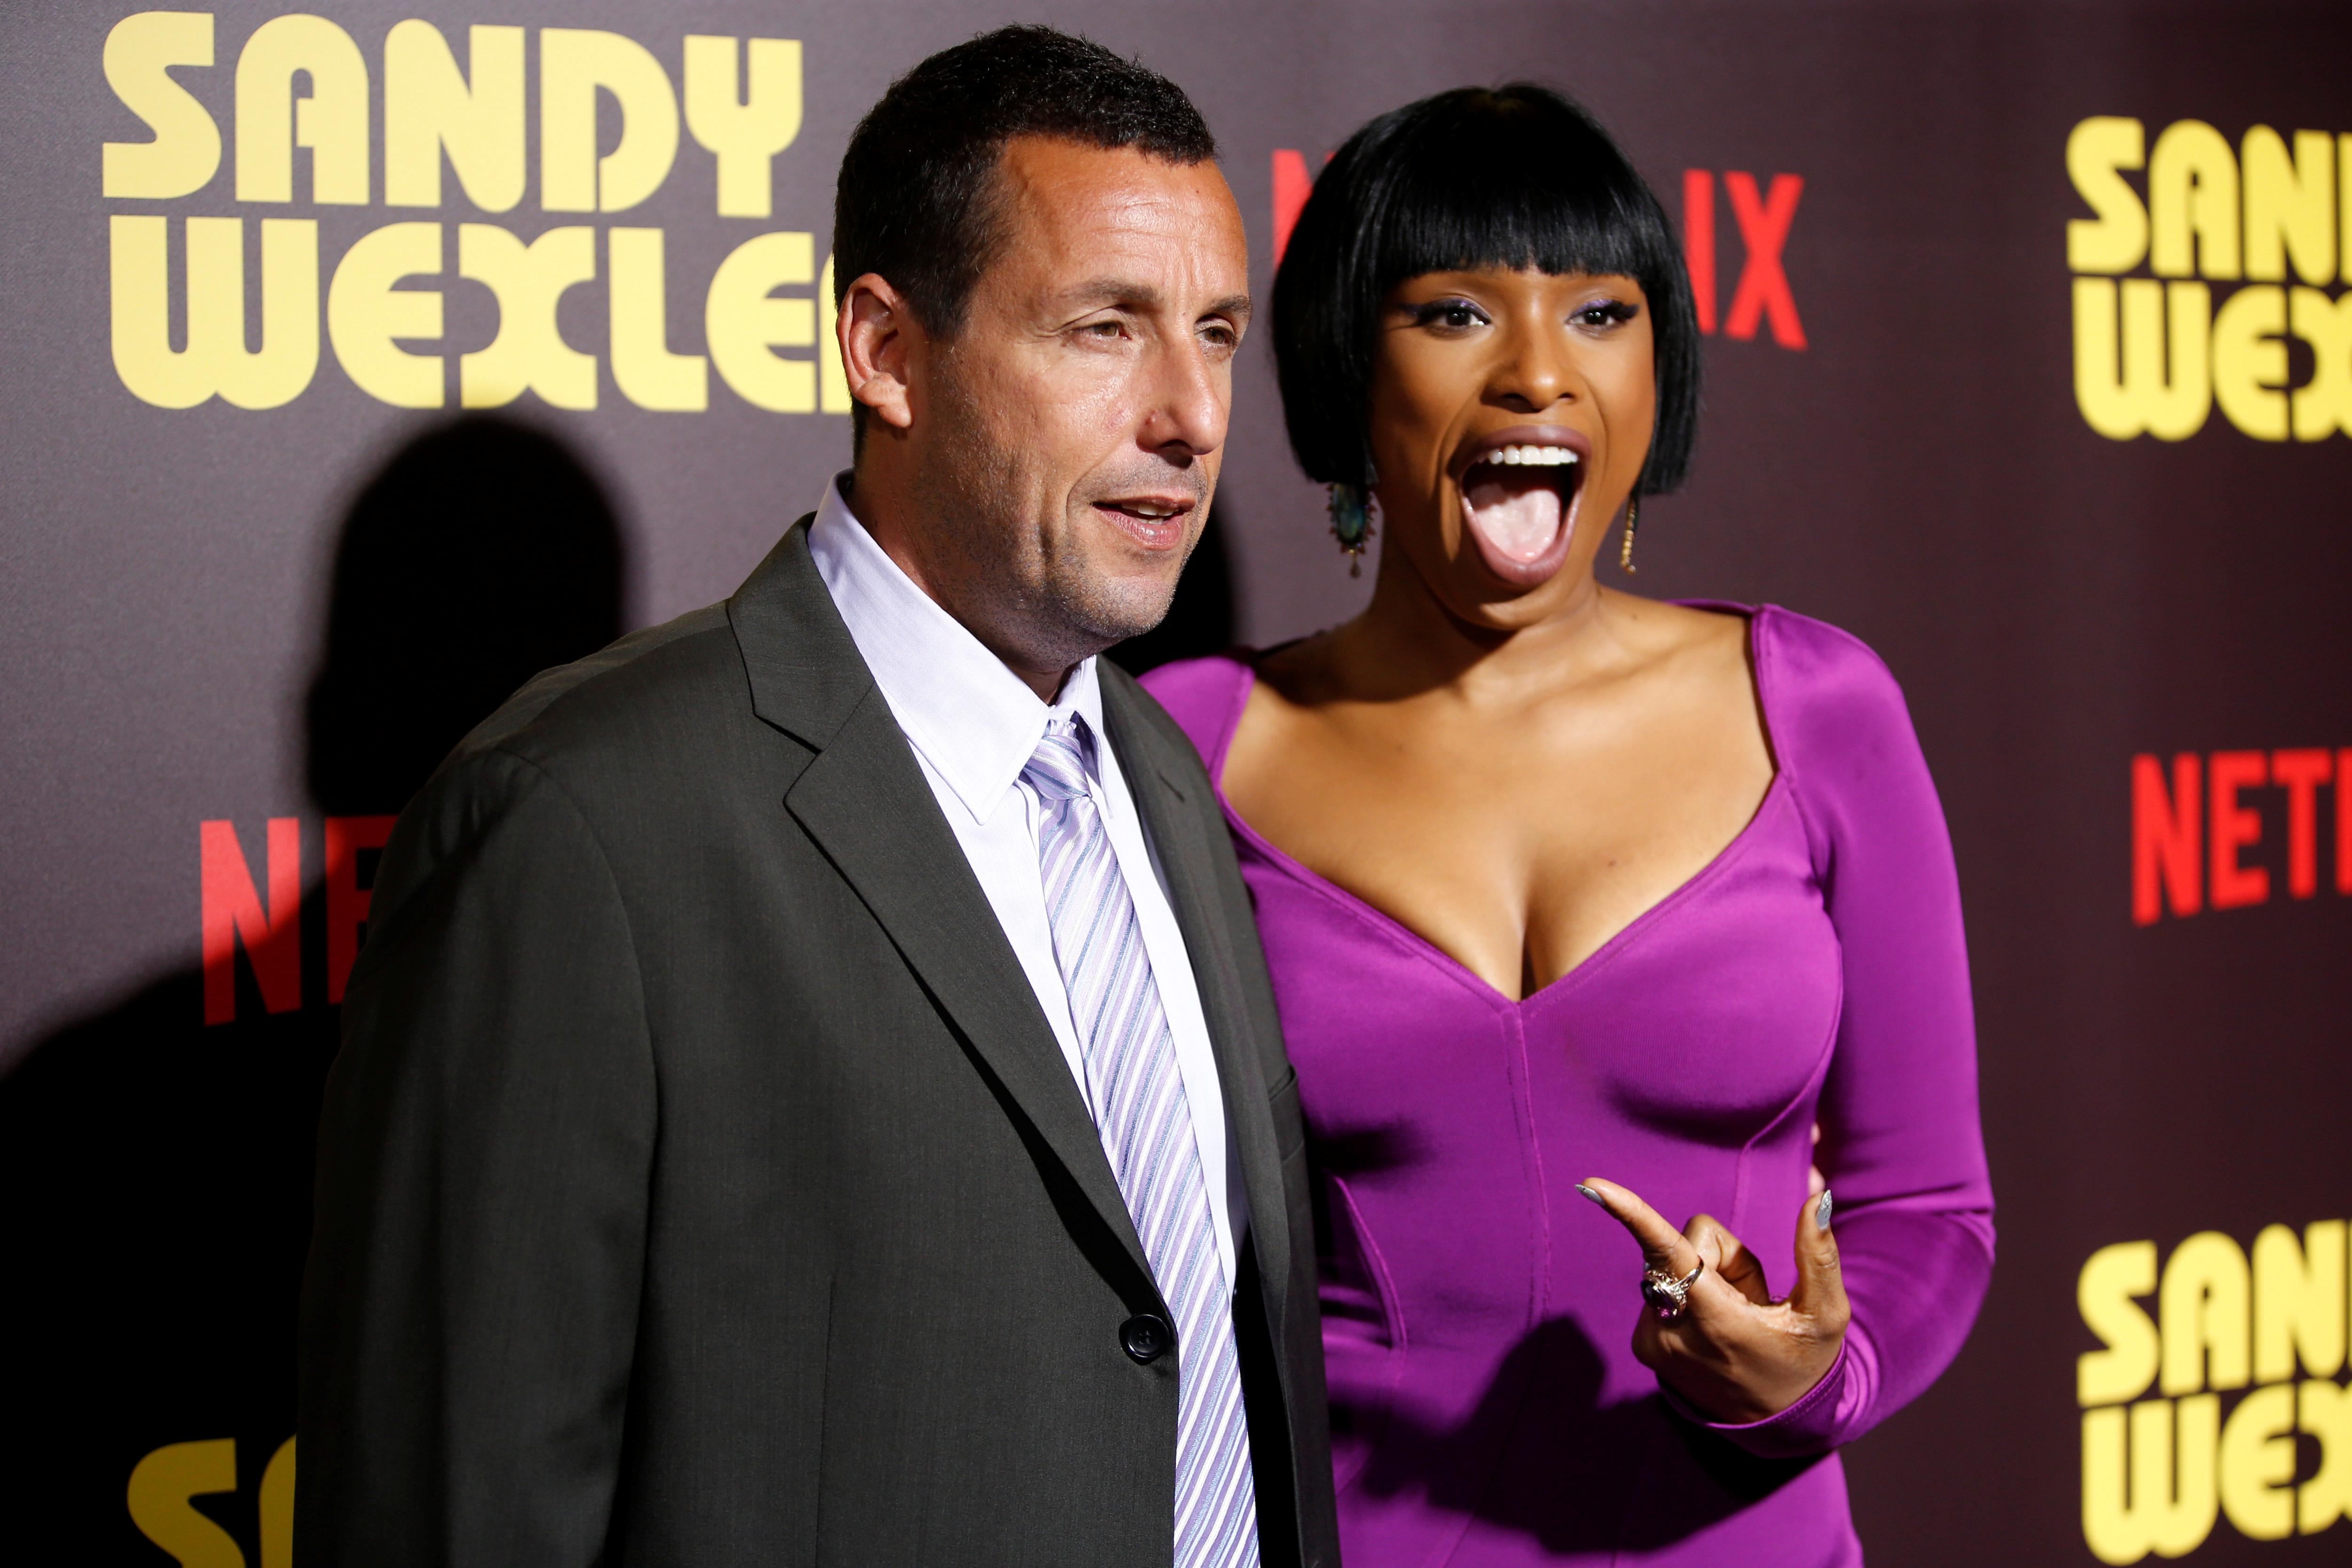 Adam Sandler to make rare appearance at Minnesota casino